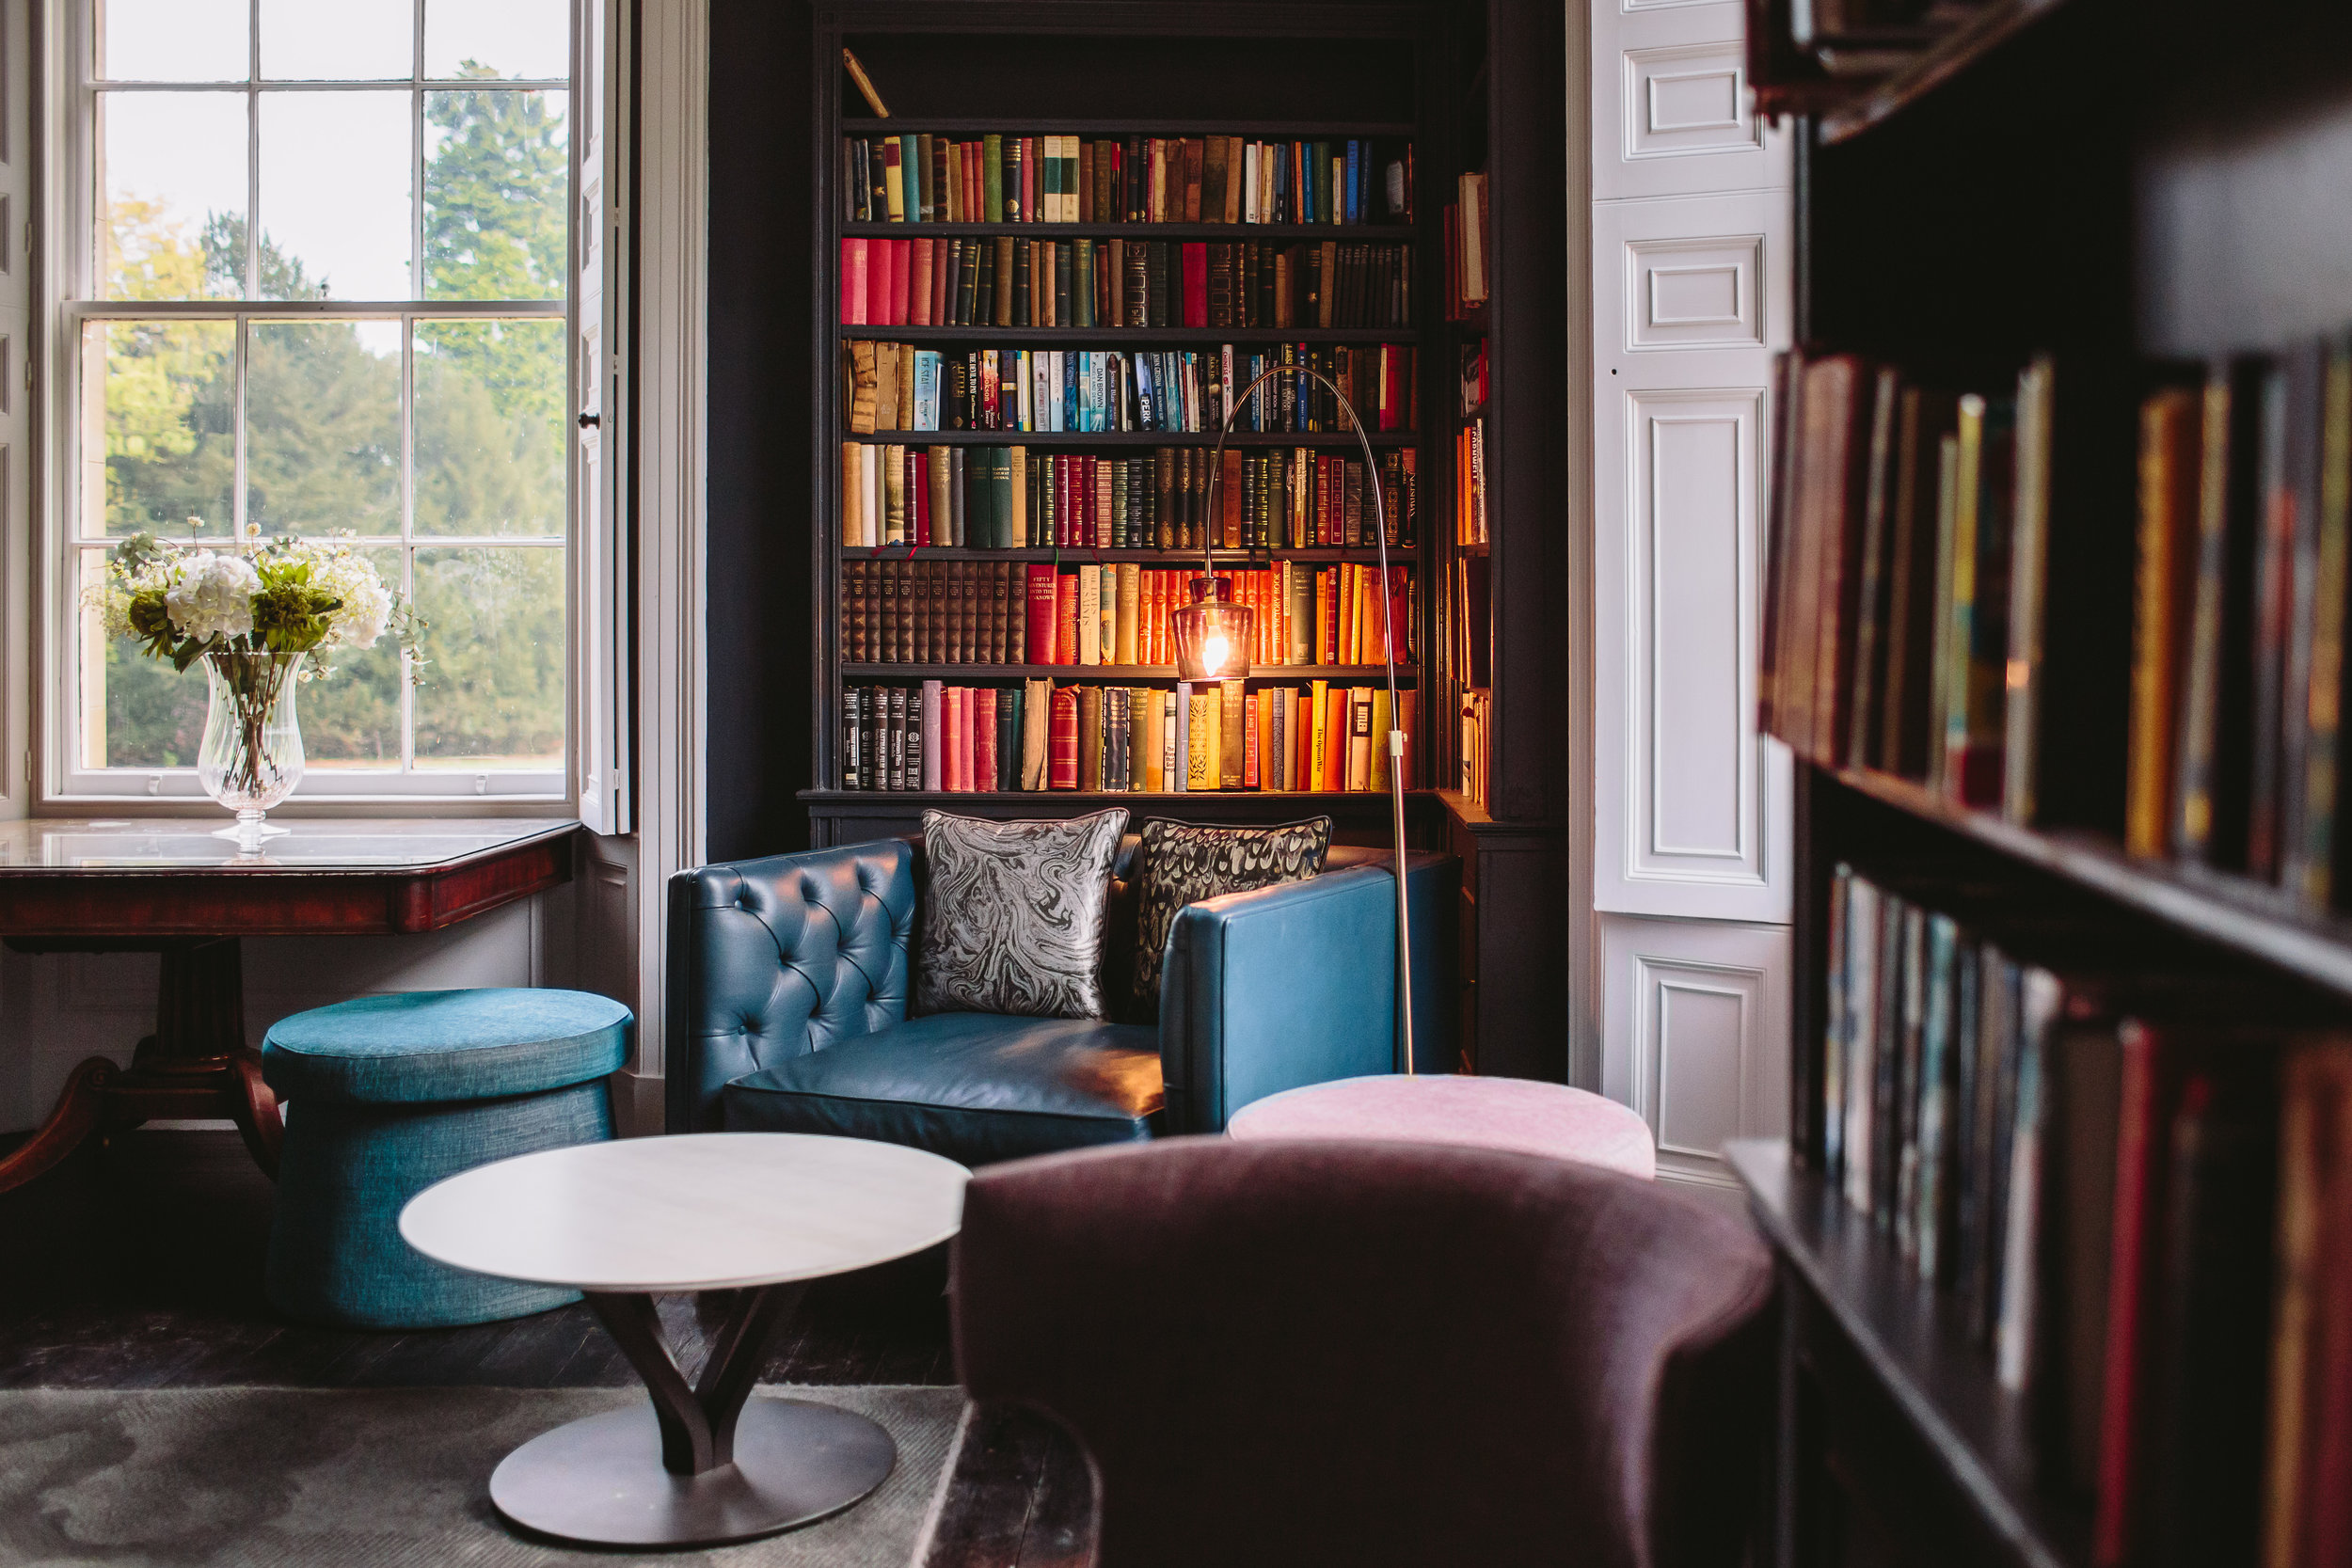 The Library Lounge - Relax by the fire in our new Library Lounge